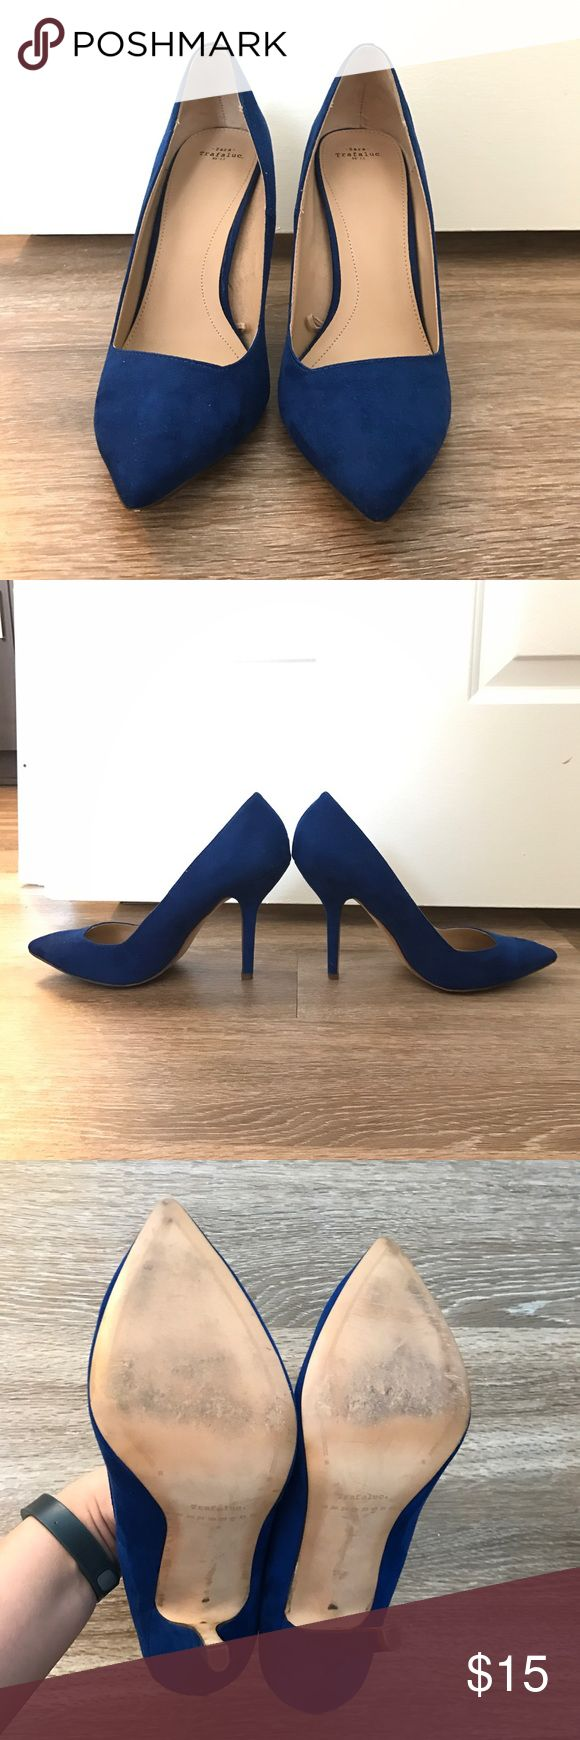 """Zara Trafaluc cobalt blue suede pumps Gorgeous cobalt blue suede pumps! Only worn once and they are super comfortable. 4"""" heel. I usually wear a 9/9.5 and these fit more like that. Zara Shoes Heels"""